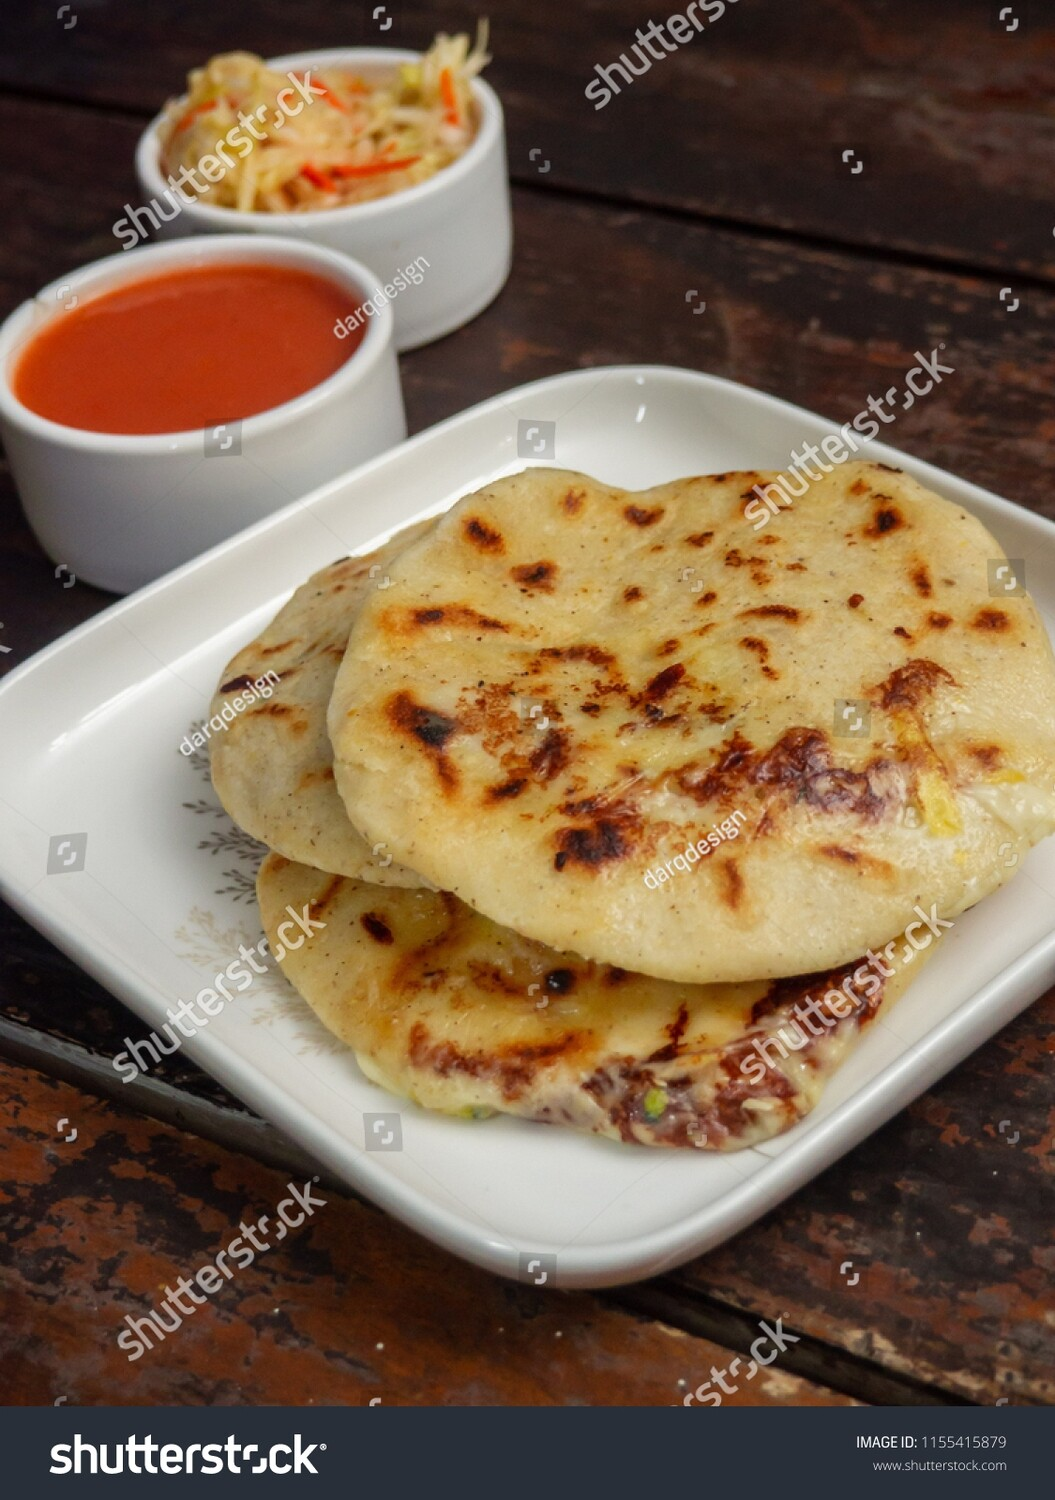 Red Bean & Cheese Pupusa (Vegetarian)